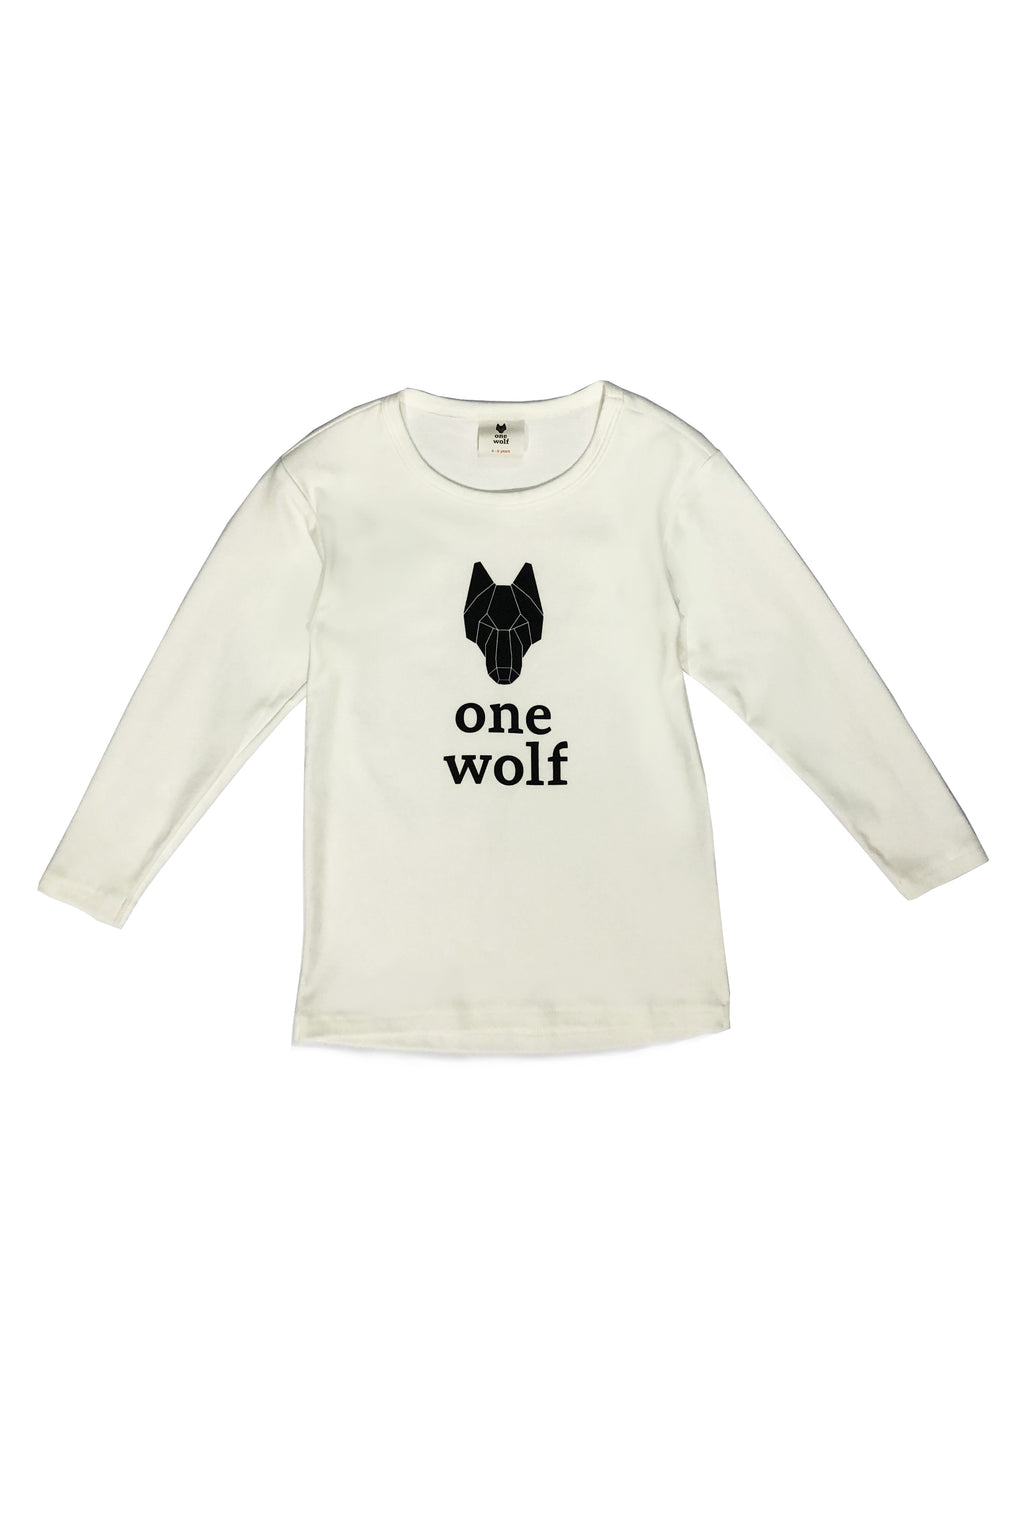 KIDS OW LOGO long sleeve T-shirt off-white/black logo - One Wolf